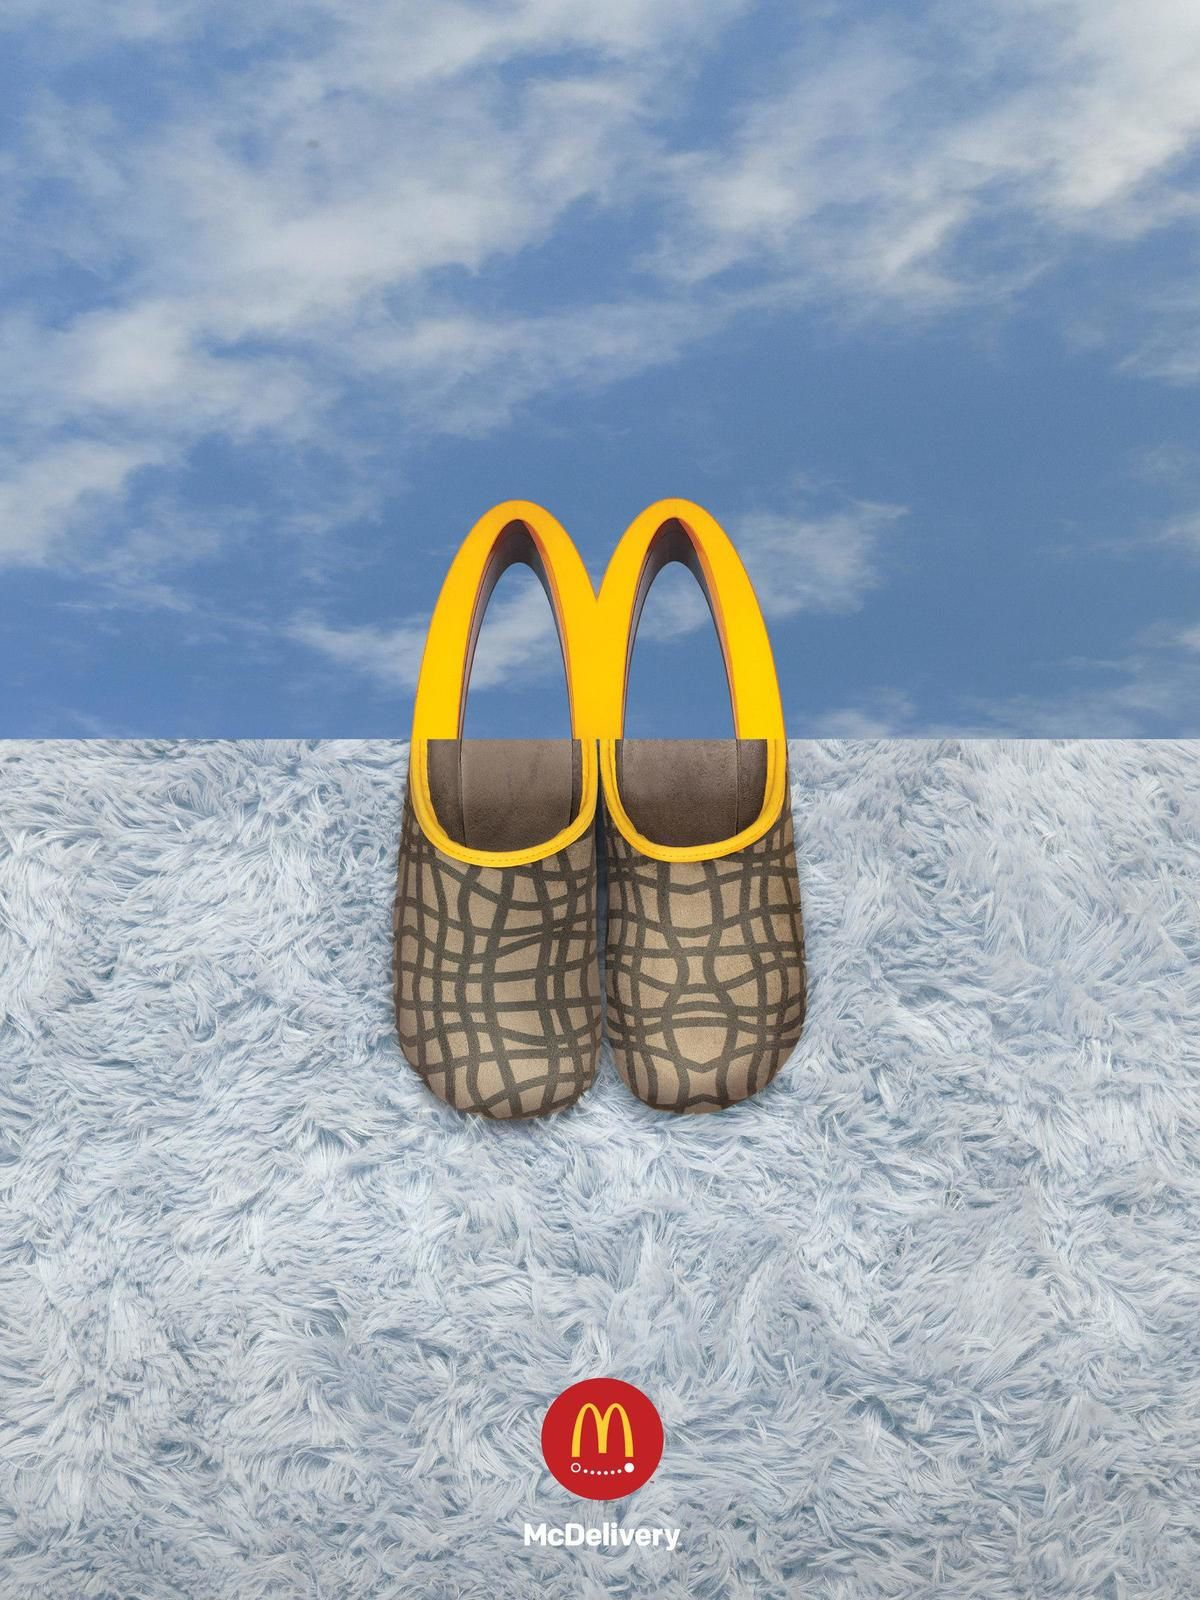 """McDonald's : """"McDelivery"""" (service de livraison) I Agence : TBWA\Buenos Aires, Buenos Aires, Argentine (septembre 2019)"""